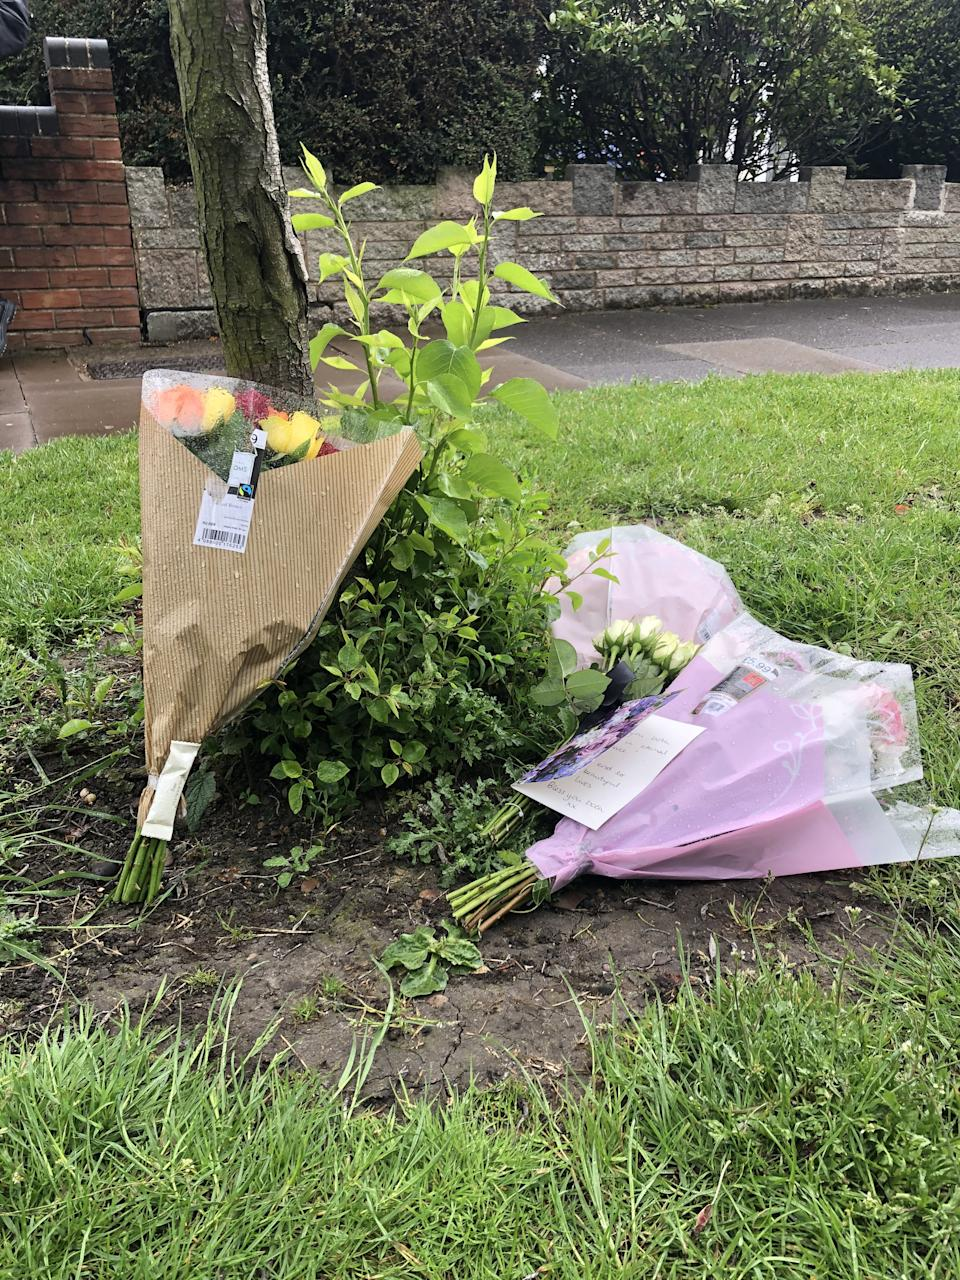 Tributes have been left to the couple, who reportedly had five children. (SWNS)